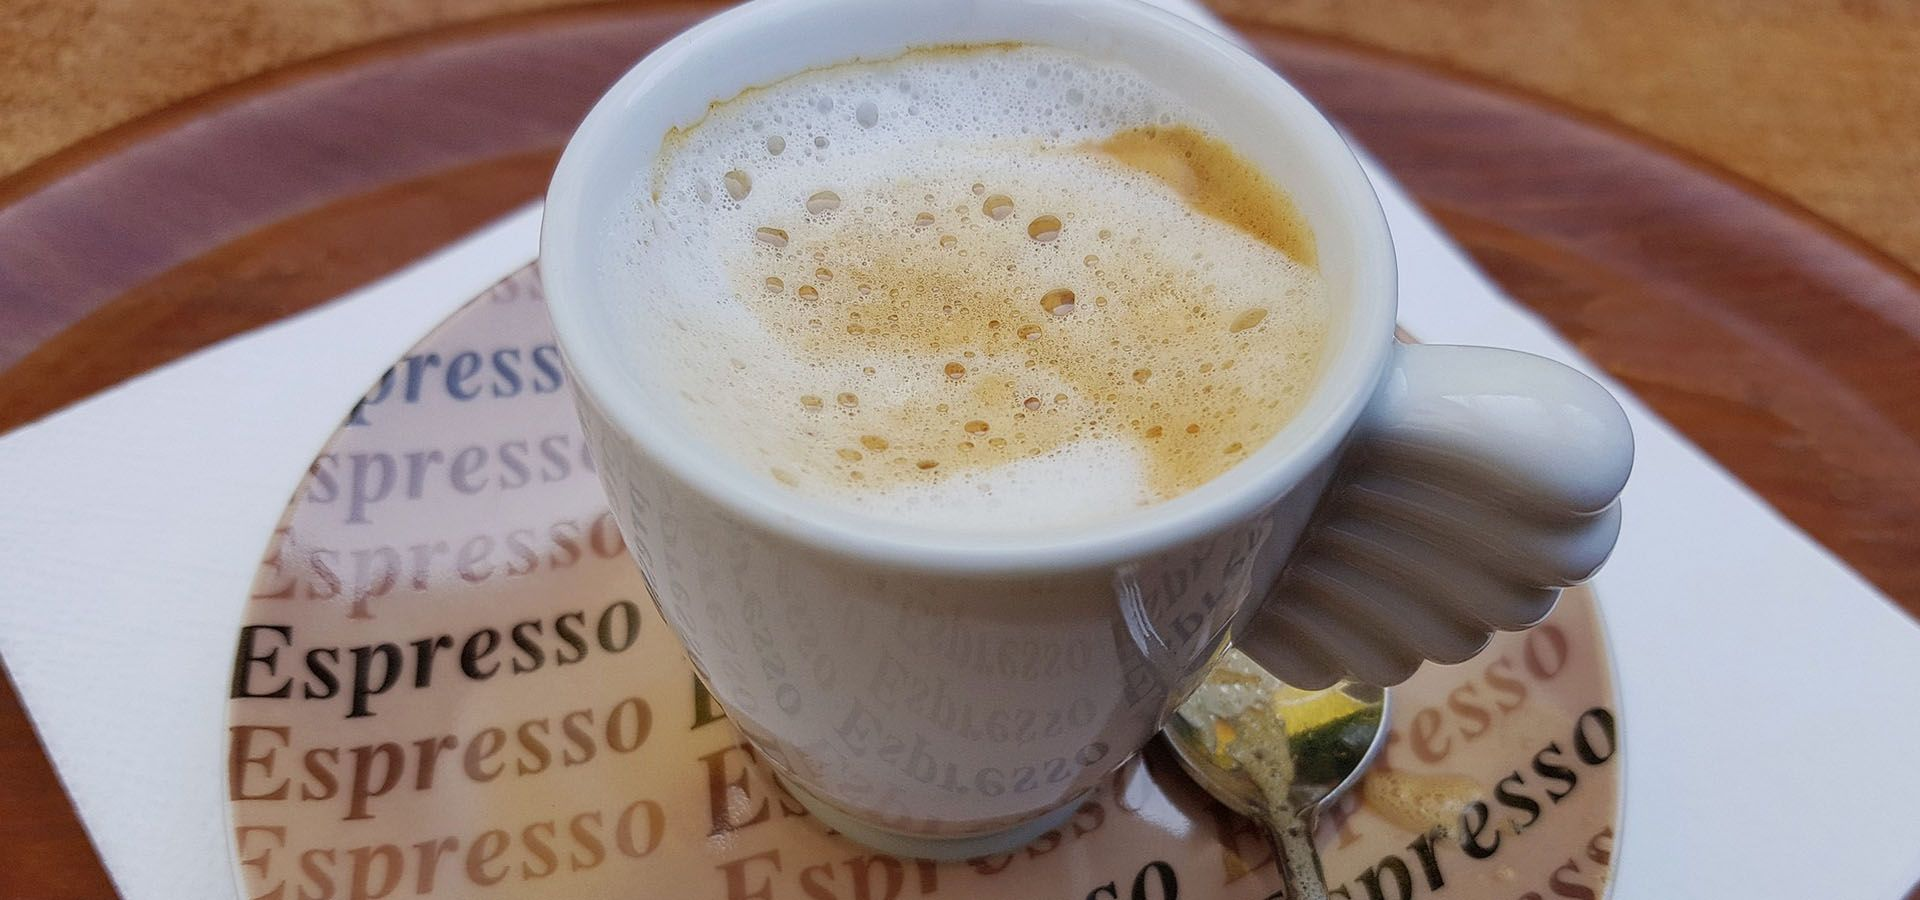 Quality, Variety Impact Hot Beverage Sales